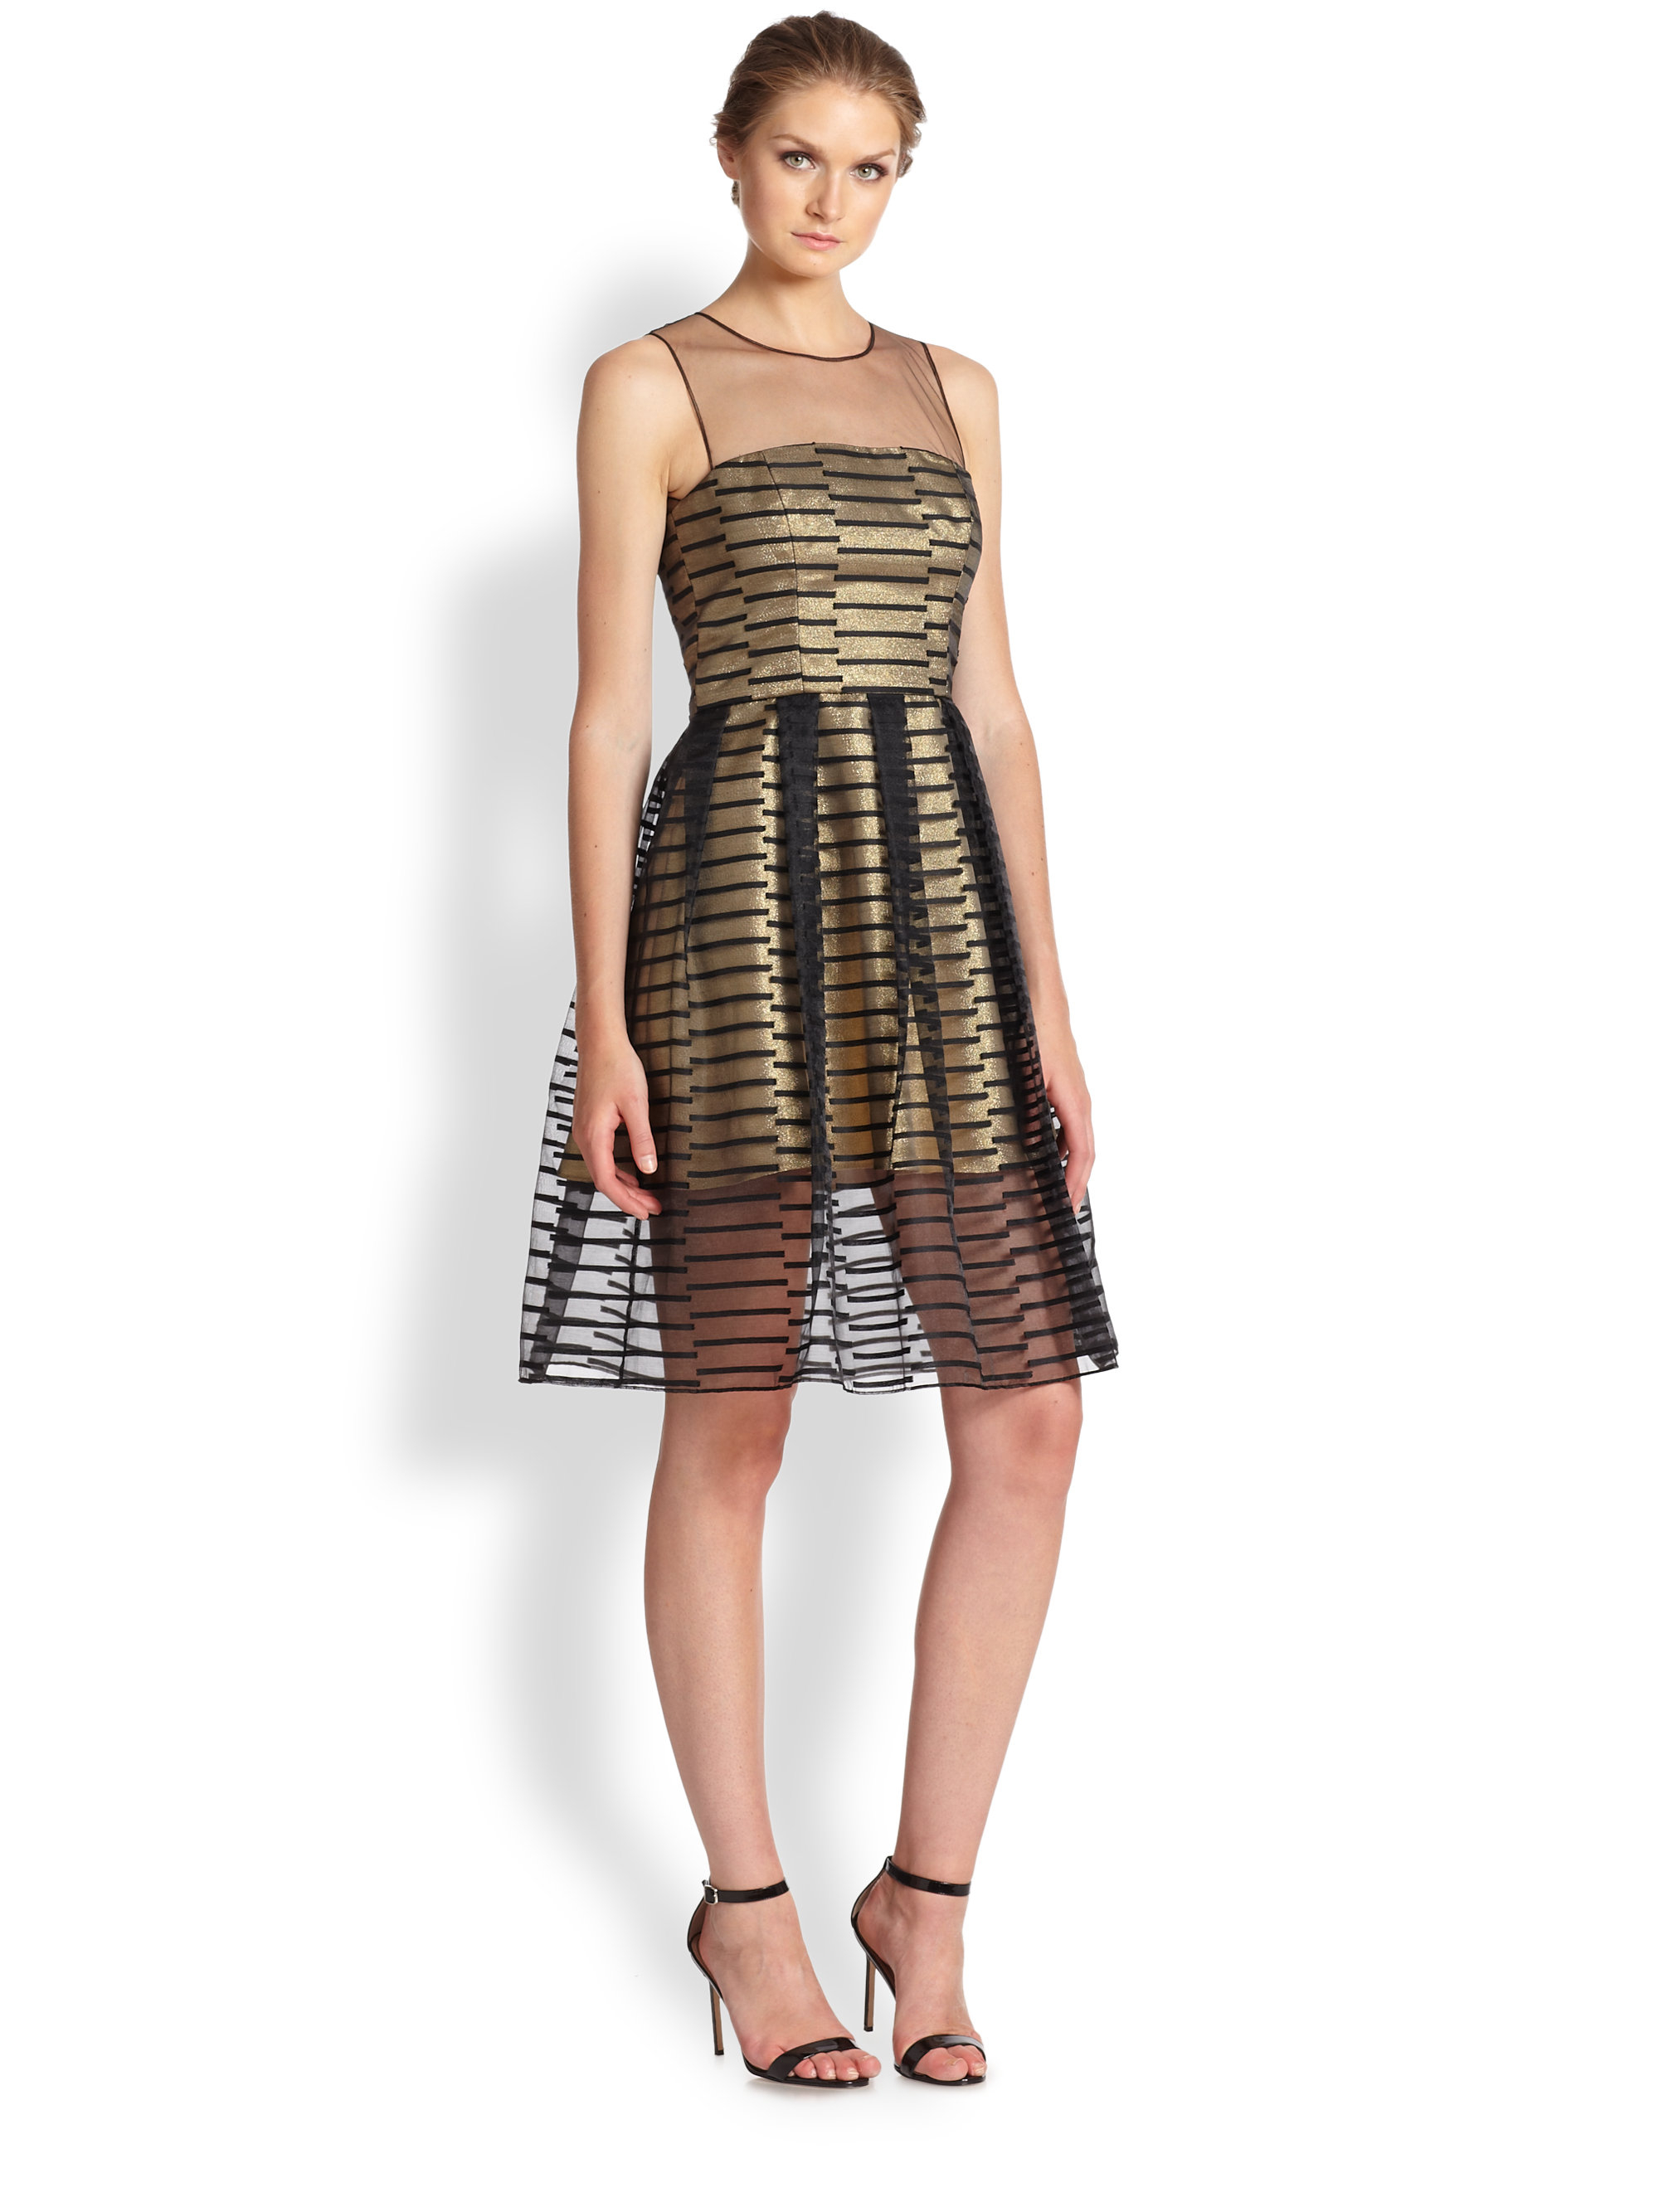 Abs by allen schwartz Metallic Cocktail Dress in Black | Lyst